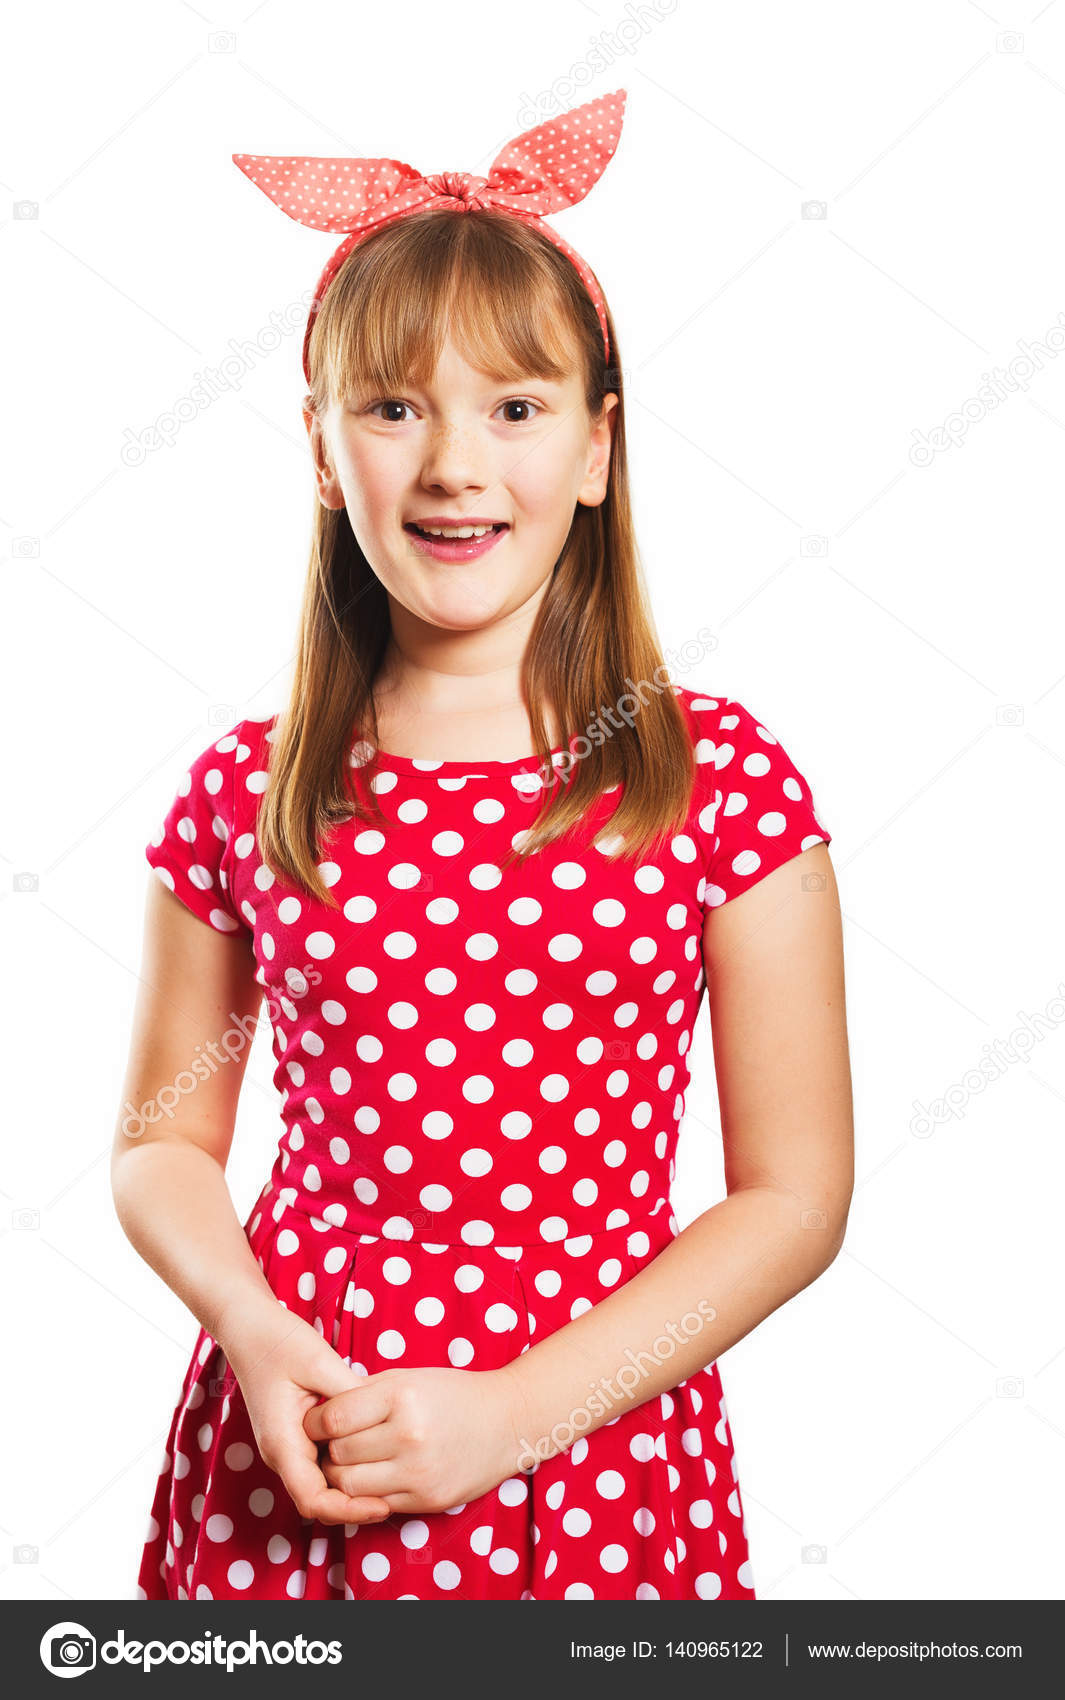 532935037 Studio shot of young little 9-10 year old girl